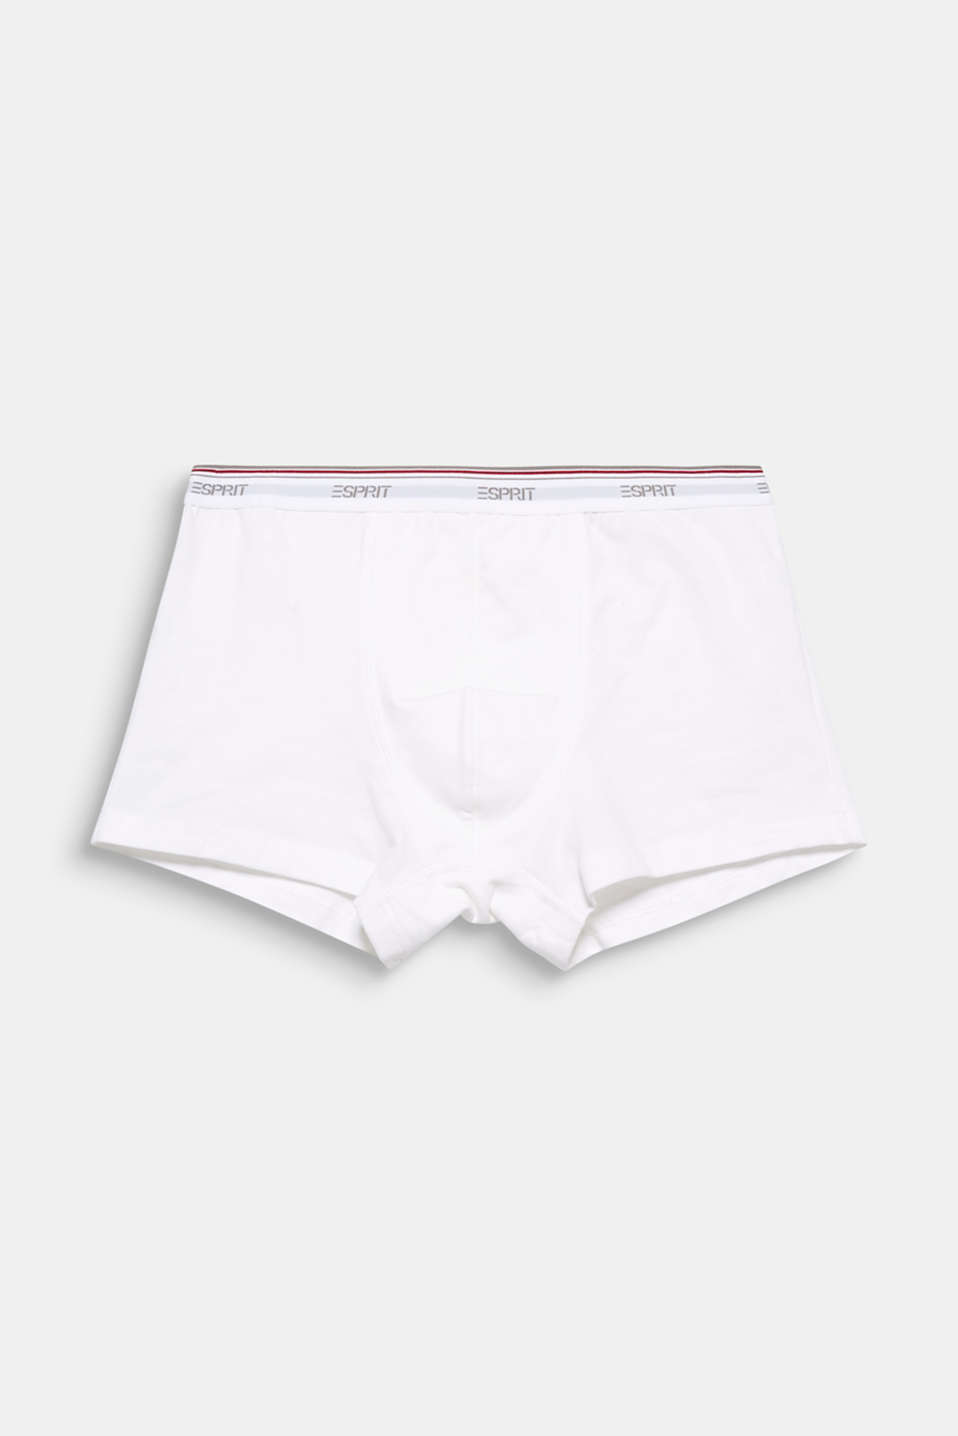 These sporty jersey shorts with legs cut in one piece and an attached  elasticated logo waistband are super comfortable.